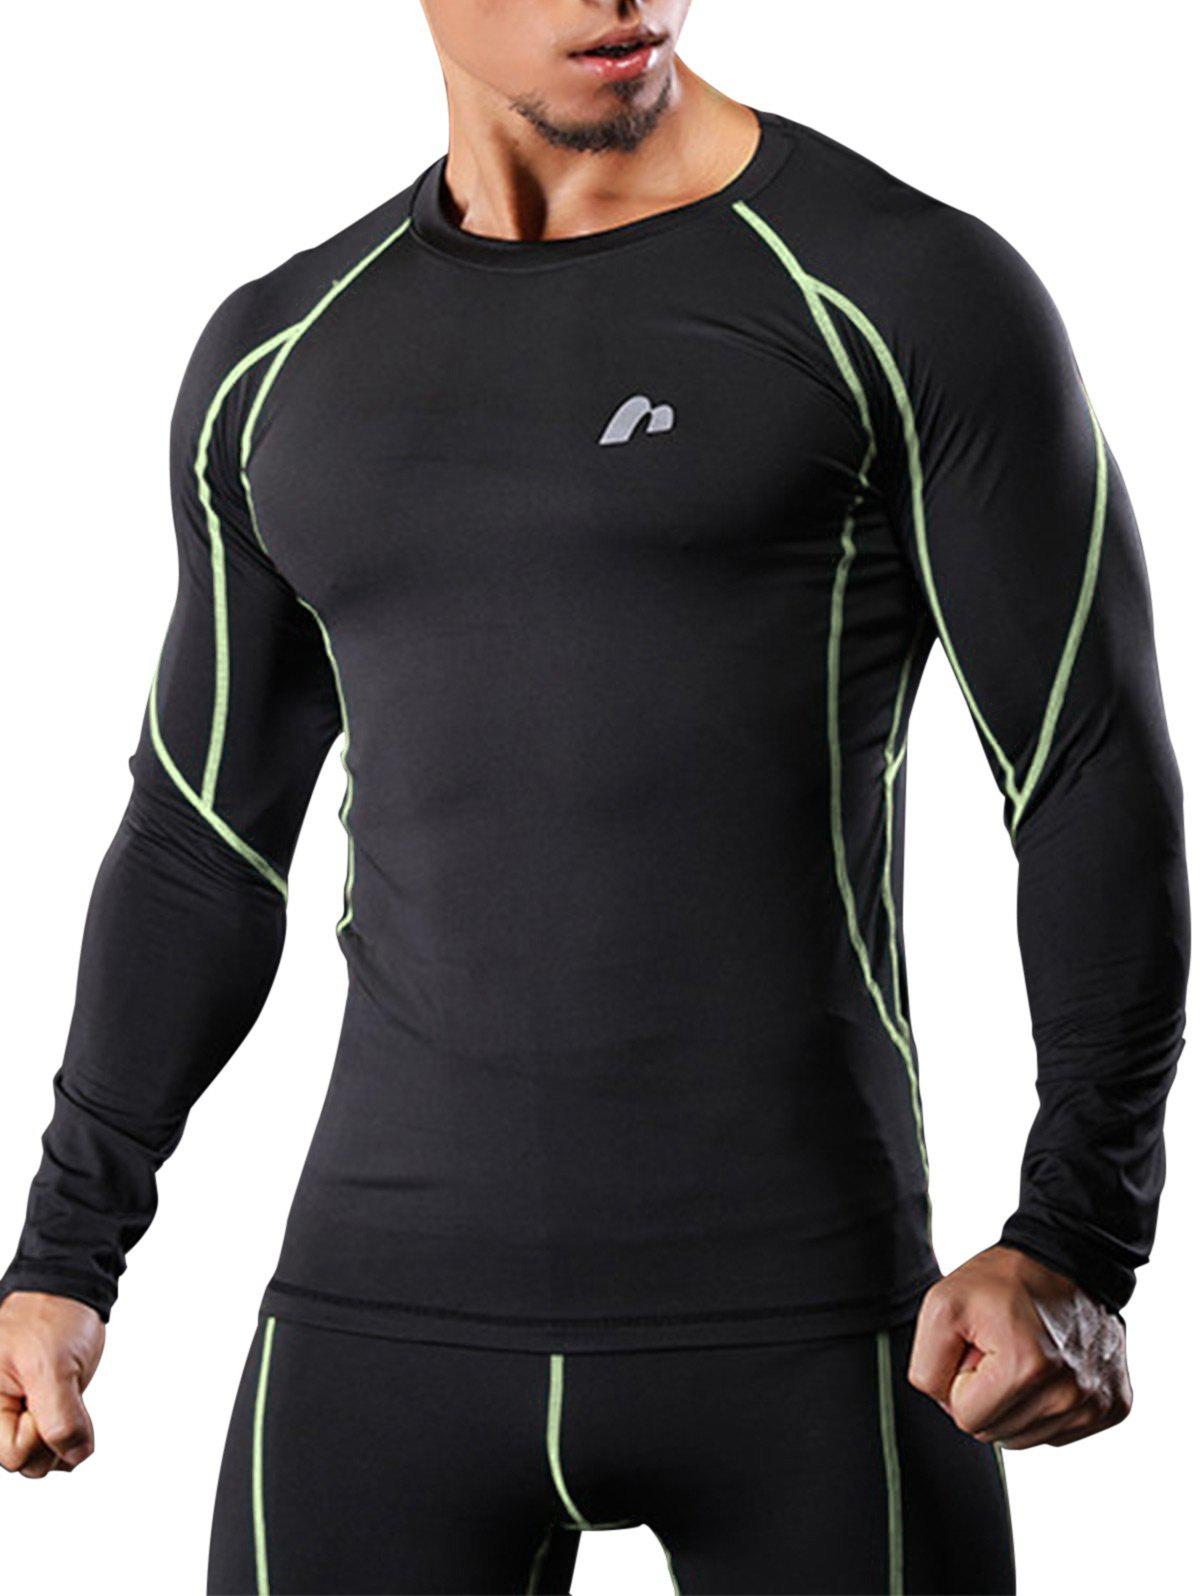 Latest Raglan Sleeve Quick Dry Suture Stretchy Gym T-shirt